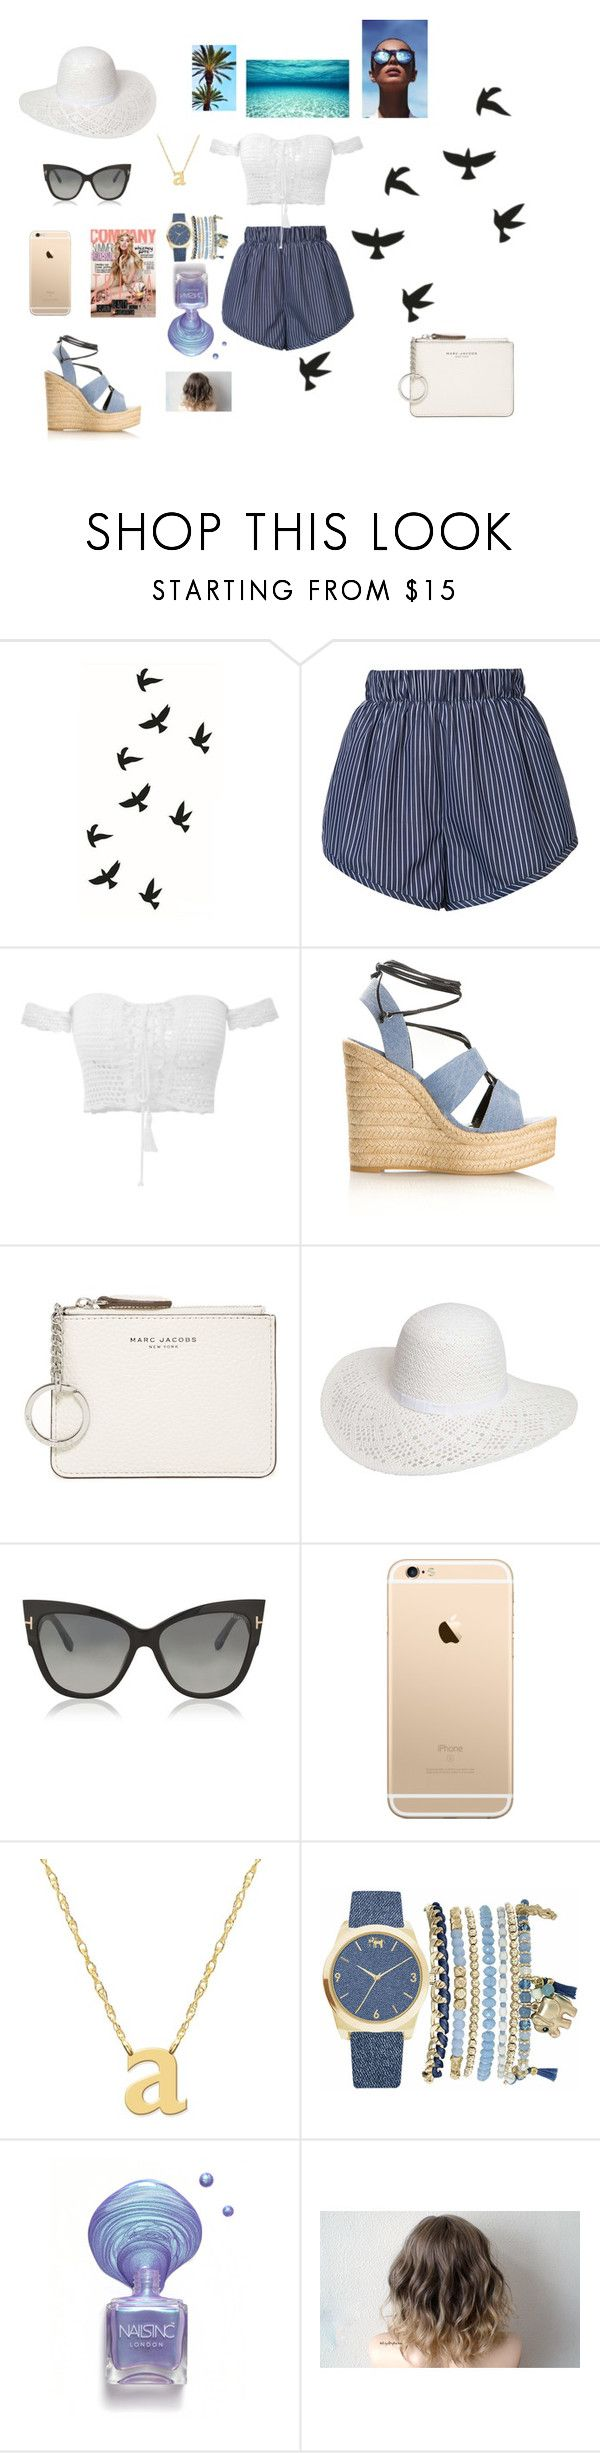 """Untitled #280"" by natalyholly on Polyvore featuring STELLA McCARTNEY, Yves Saint Laurent, Marc Jacobs, Dorothy Perkins, Tom Ford, Jane Basch, Mixit and Le Specs"